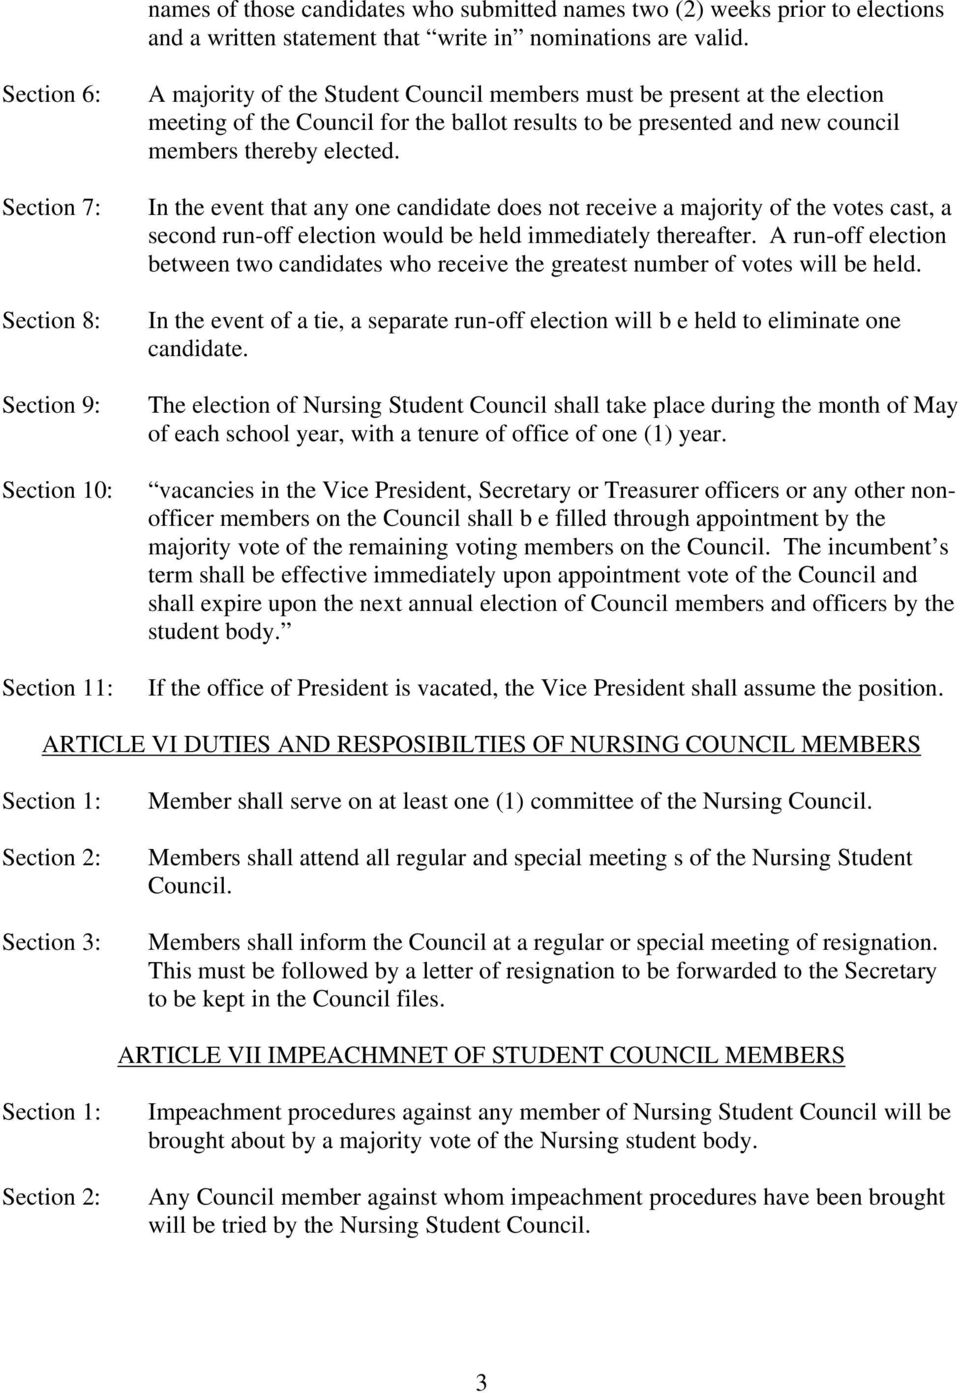 presented and new council members thereby elected. In the event that any one candidate does not receive a majority of the votes cast, a second run-off election would be held immediately thereafter.